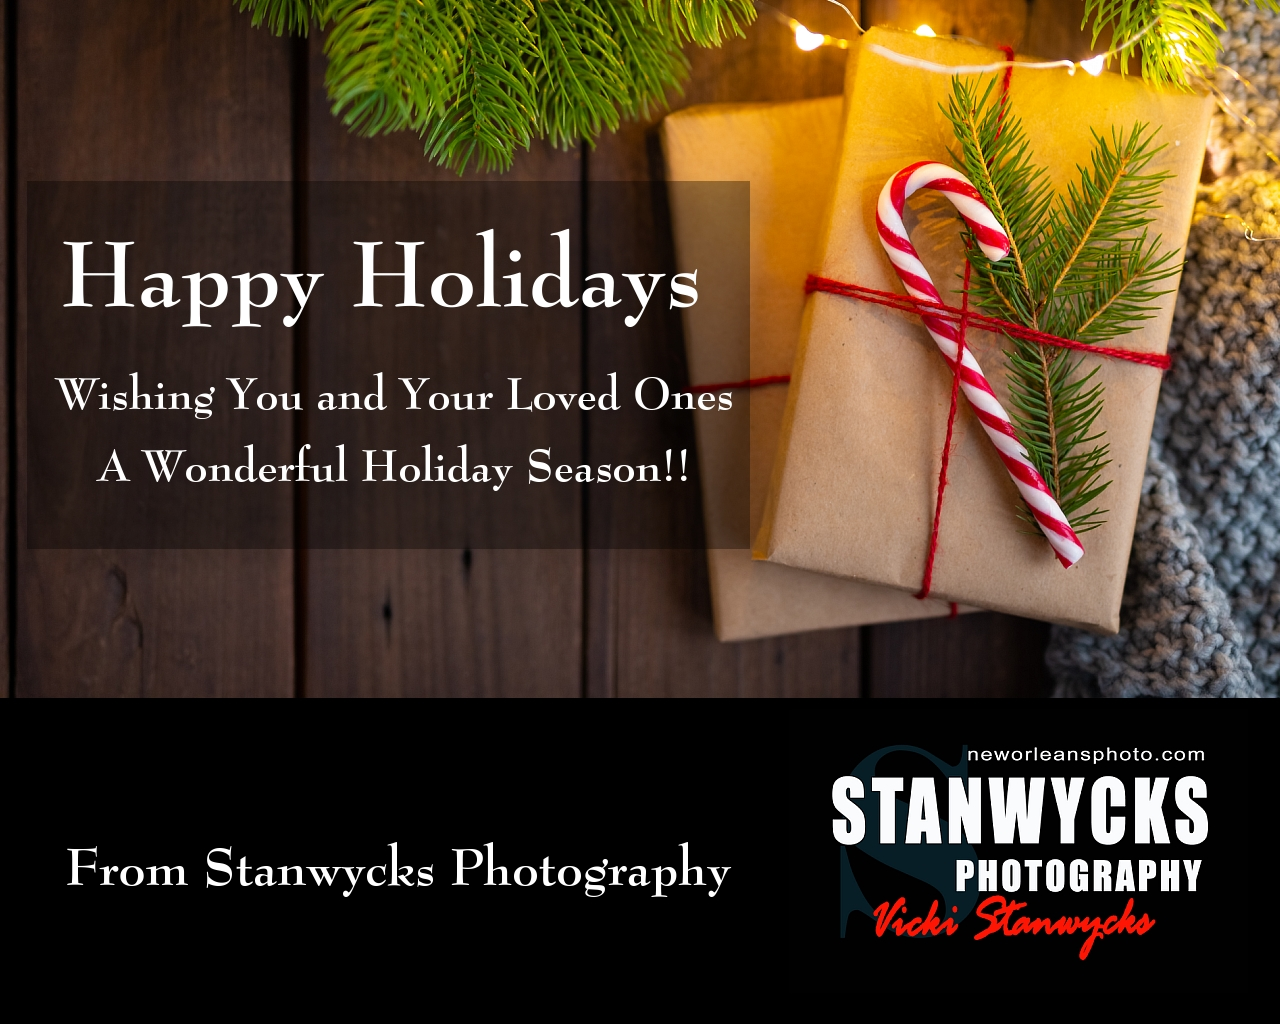 Holiday Web Pages 003 (Sheet 3)